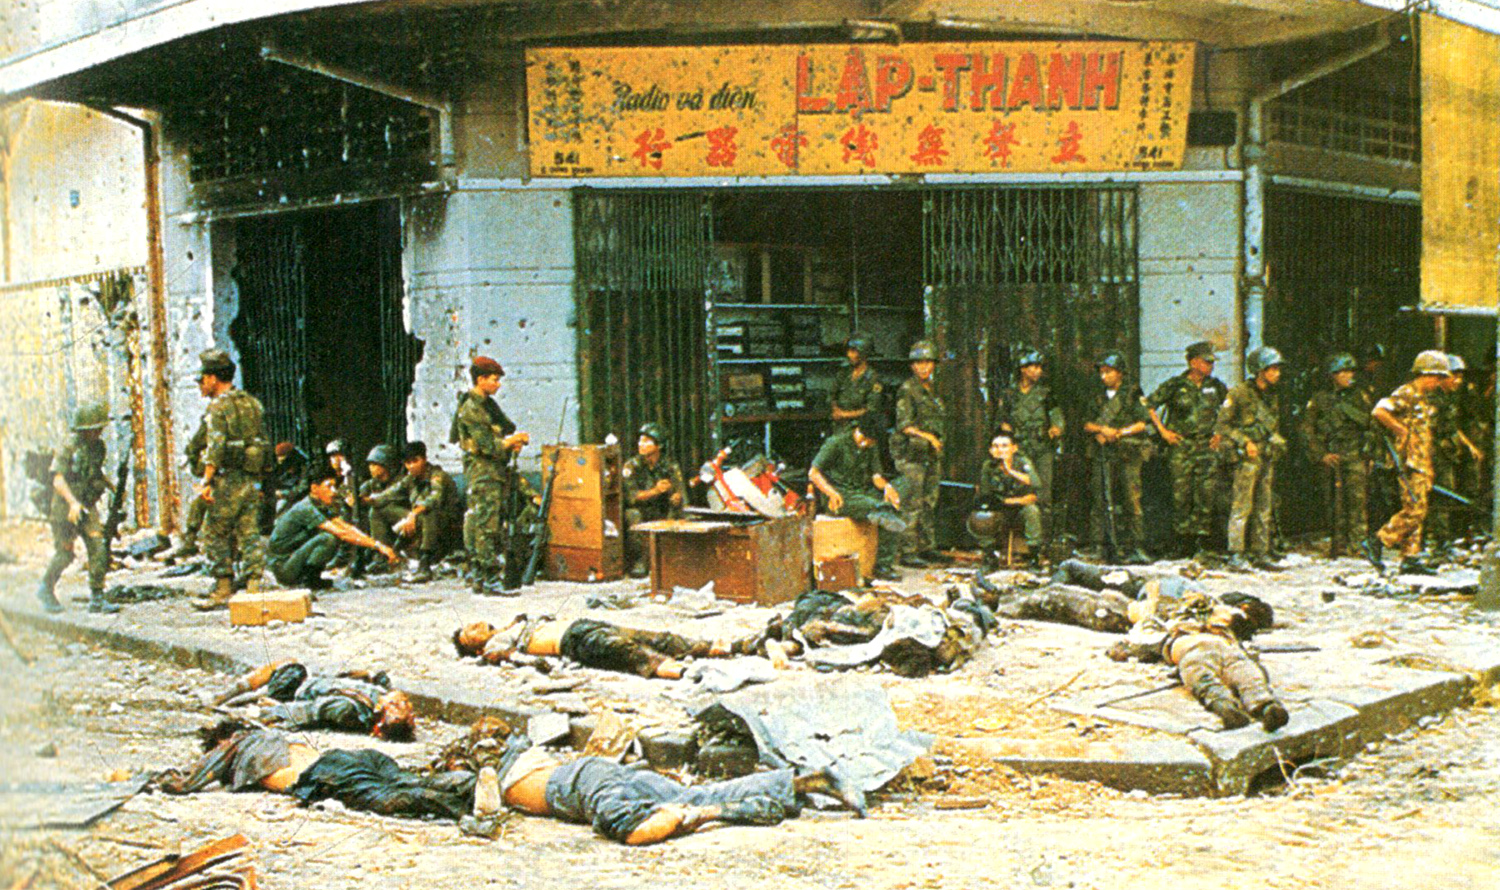 196802_arvn_troops_at_rest_in_cholon.jpg